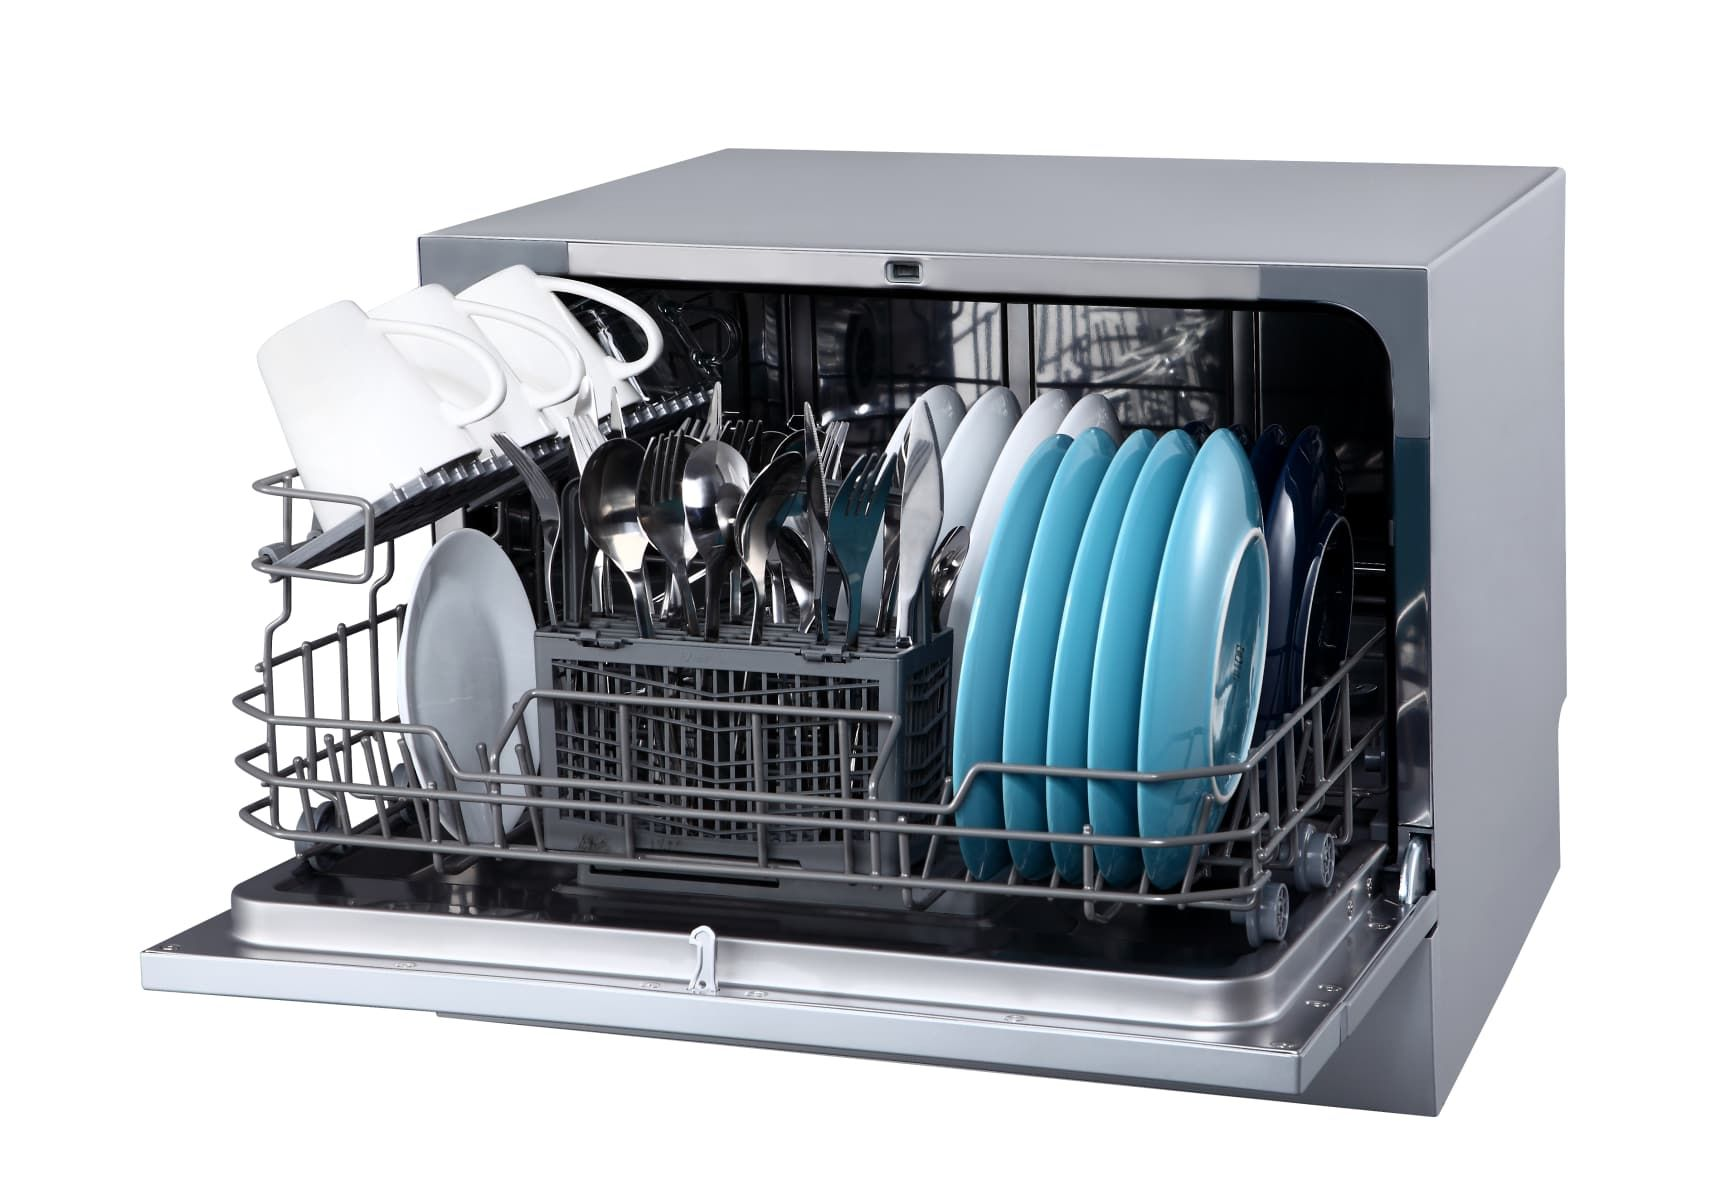 Edgestar Dwp62sv Silver 22 Inch Wide 6 Place Setting Energy Star Rated Countertop Dishwasher Countertop Dishwasher Small Dishwasher Compact Dishwasher